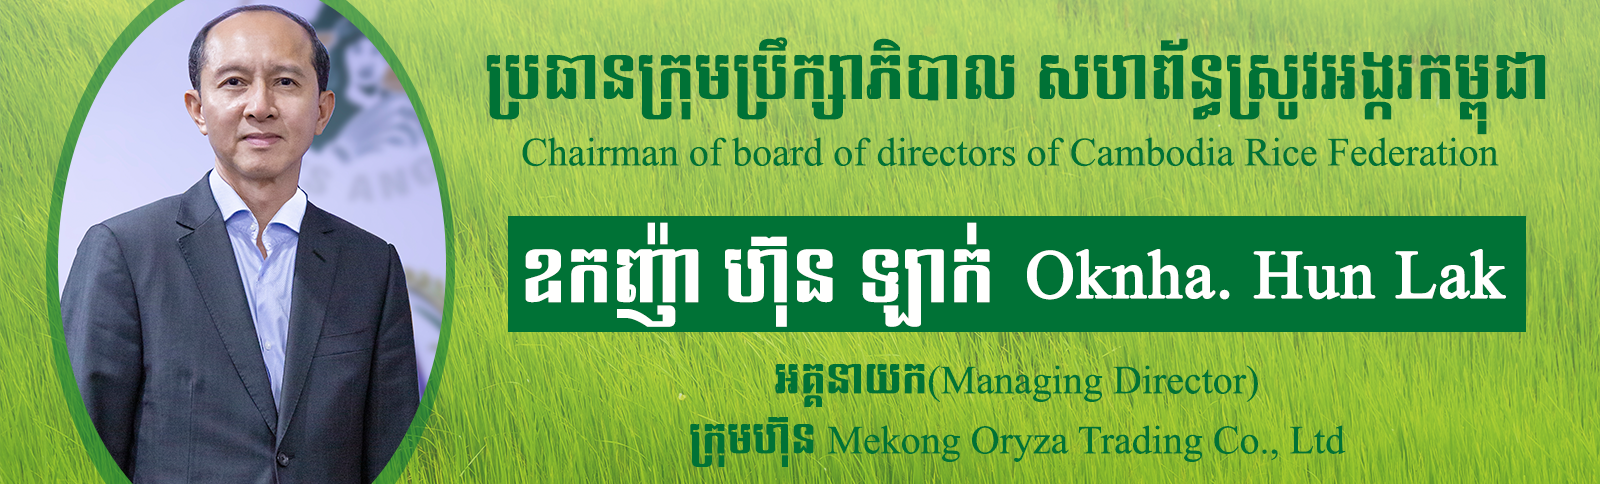 Chairman of Board of Director of CRF- Oknha. Hun Lak